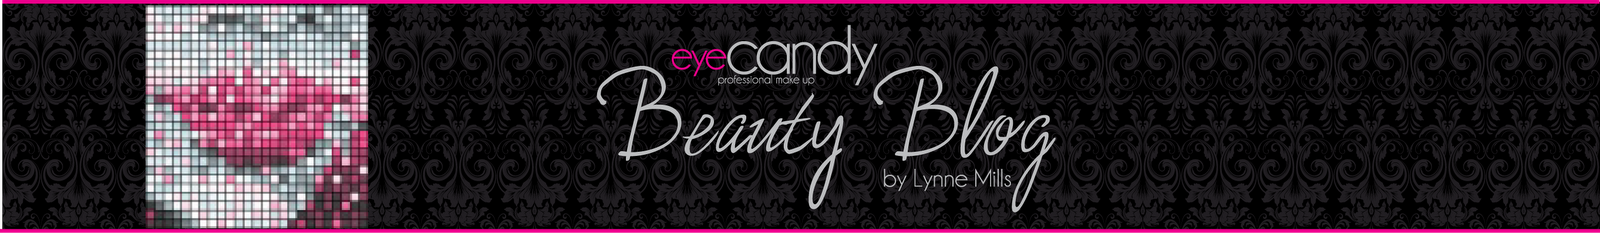 EyeCandy Make-Up & Beauty Blog